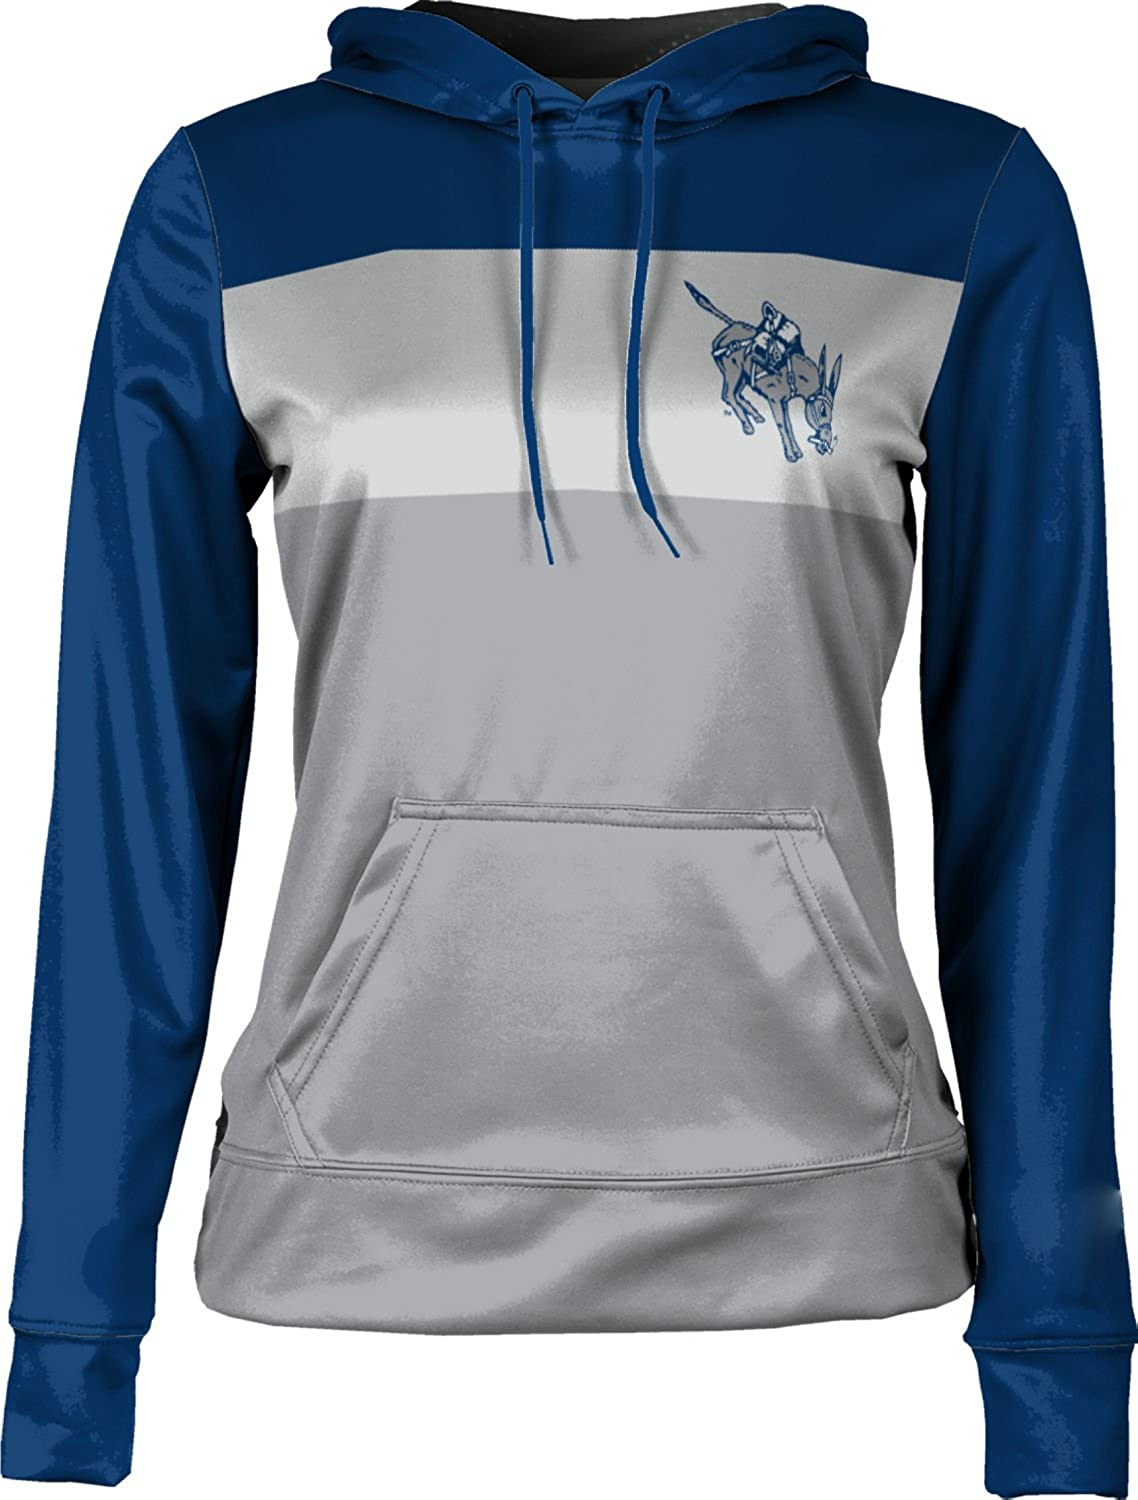 School Spirit Sweatshirt Colorado School of Mines University Girls Pullover Hoodie Prime